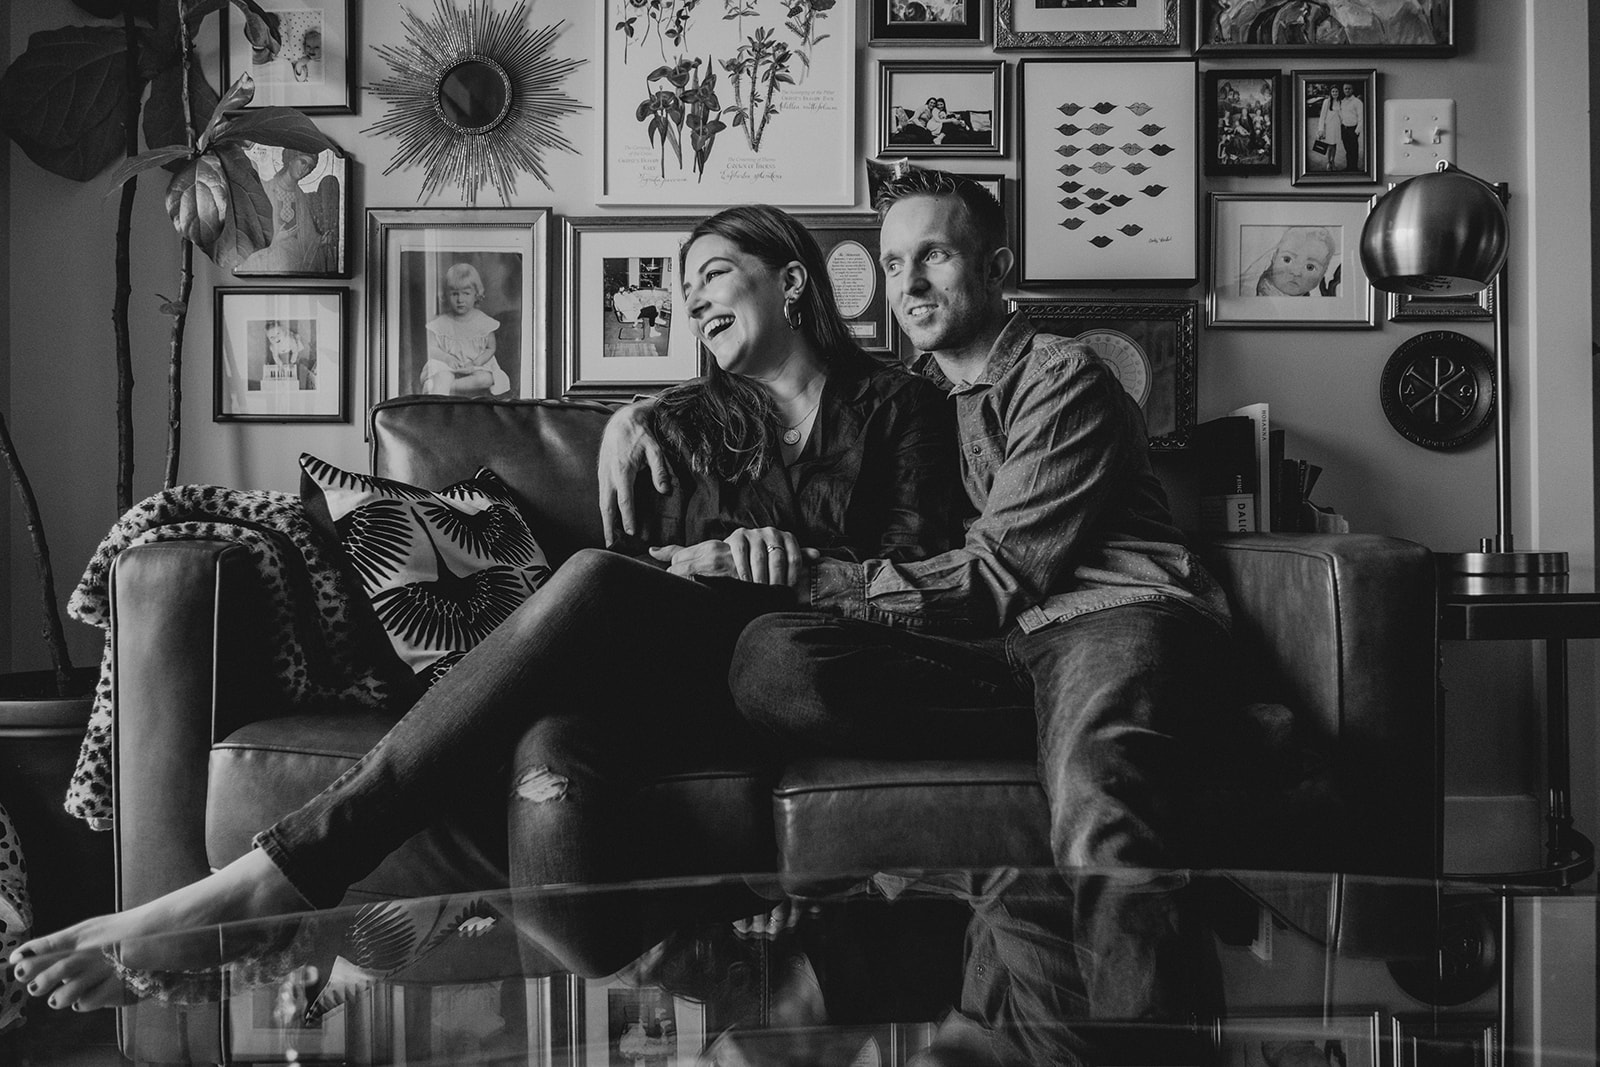 A husband and wife laugh together while sitting on a couch in their apartment in Washington, DC.